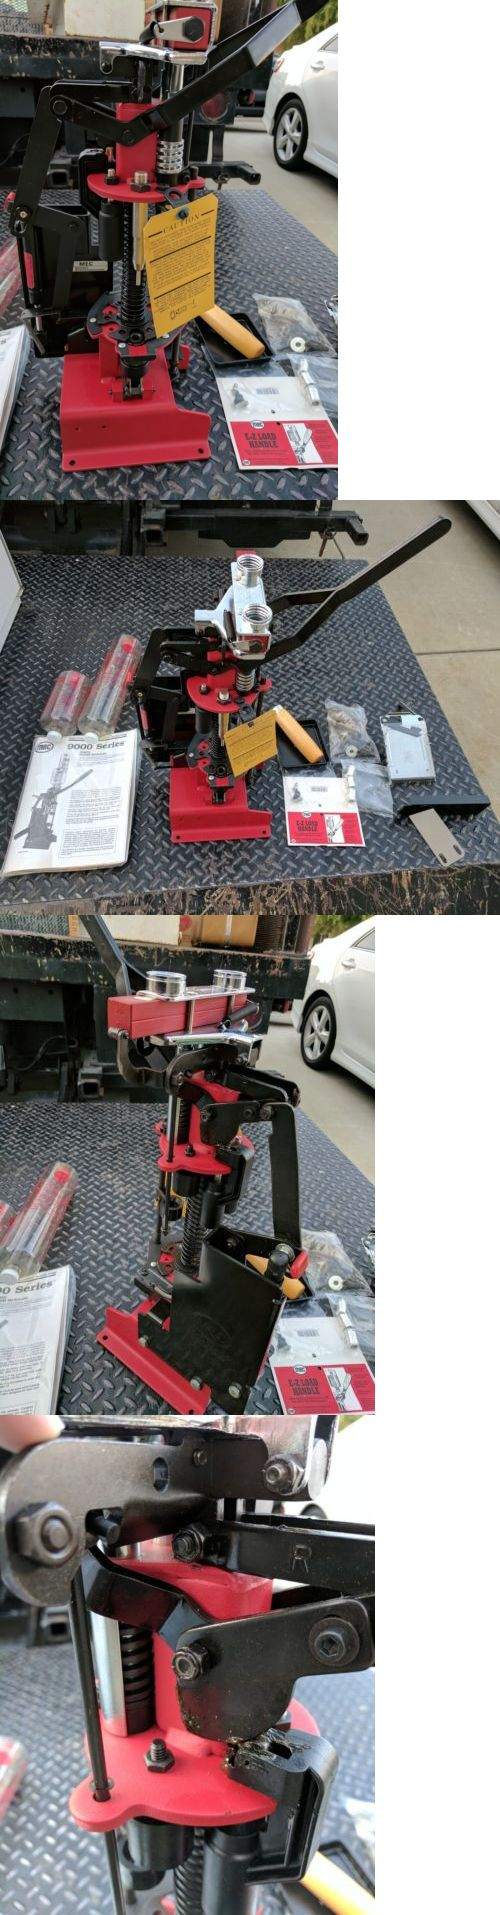 Presses and Accessories 71120: Mec 9000G 20Ga Shotshell Reloader Press New Old Box -> BUY IT NOW ONLY: $550 on eBay!